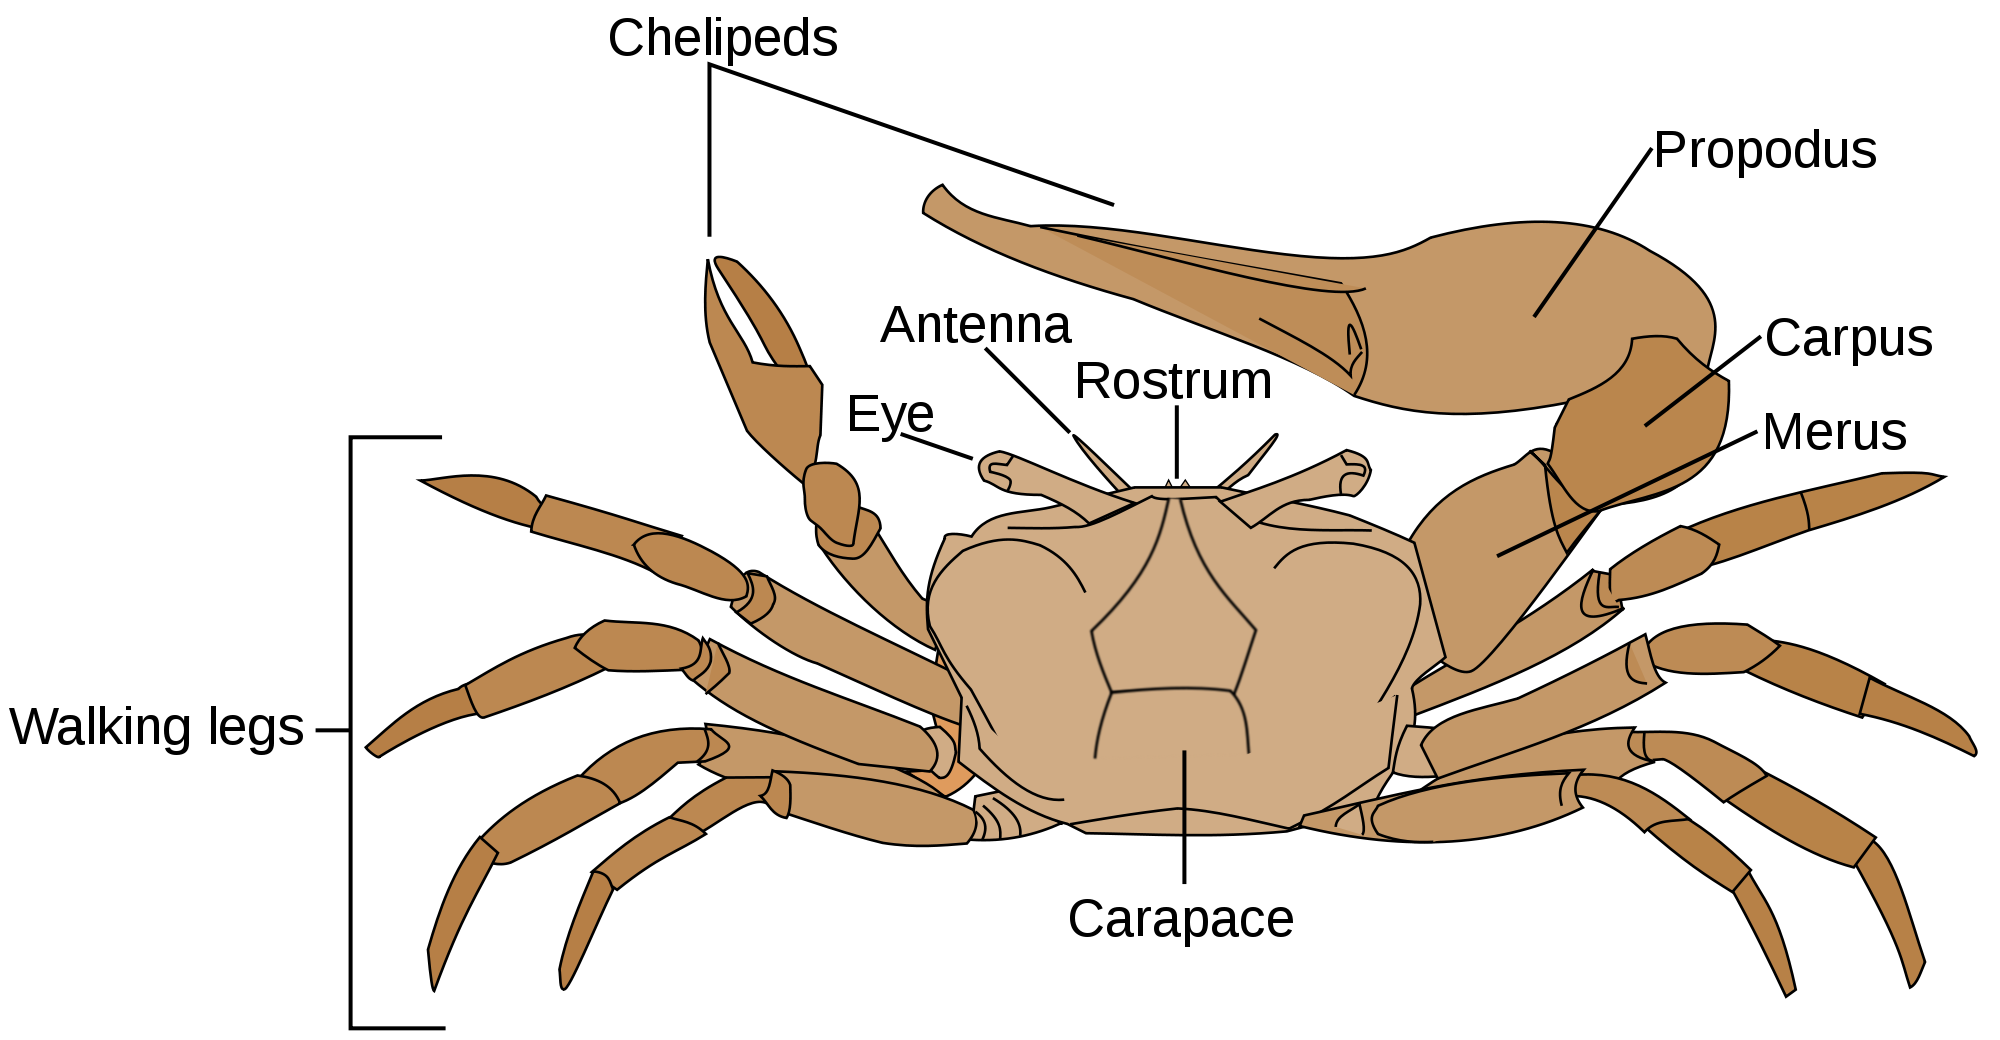 File fiddler crab anatomy. Fiddle drawing svg clipart freeuse stock